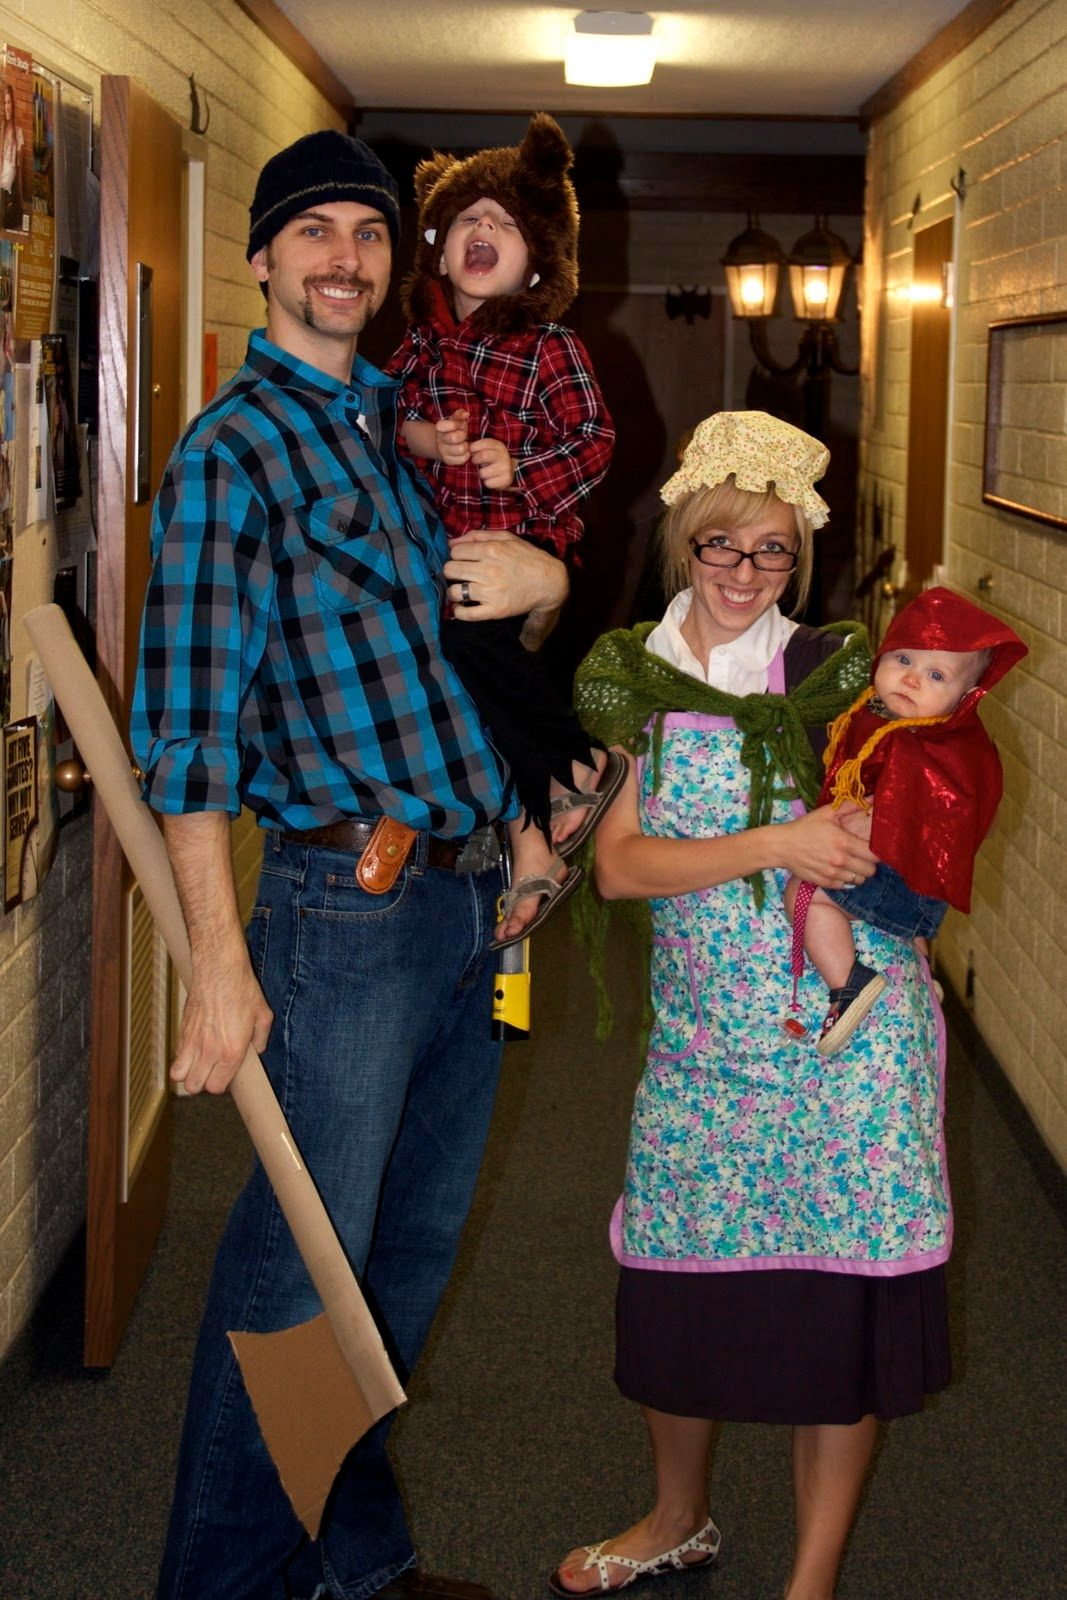 Little Red Riding Hood family costumes | Trick or Treat | Pinterest ...